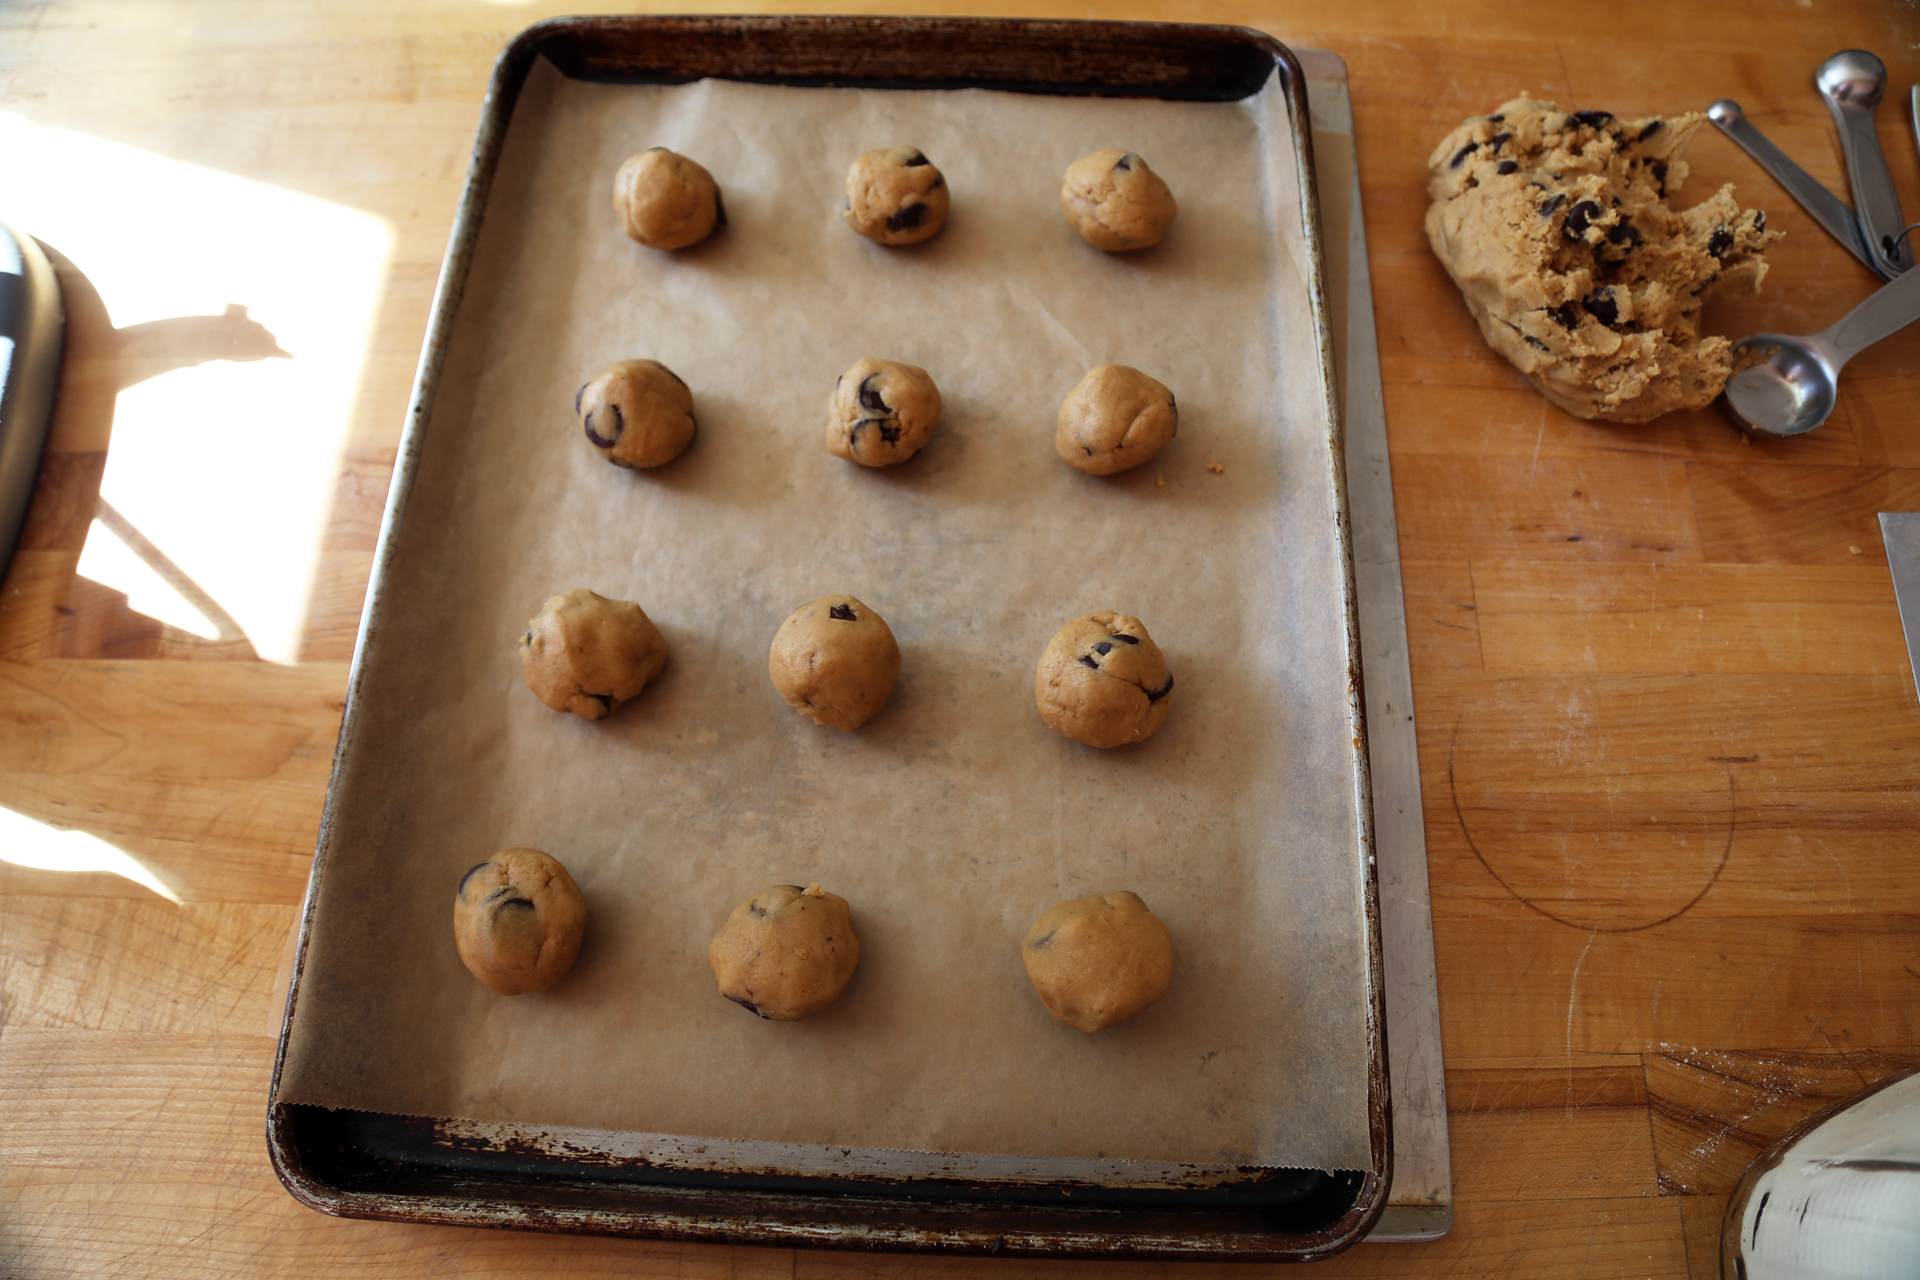 Roll tablespoonfuls of the dough into balls and space evenly on the baking sheets.